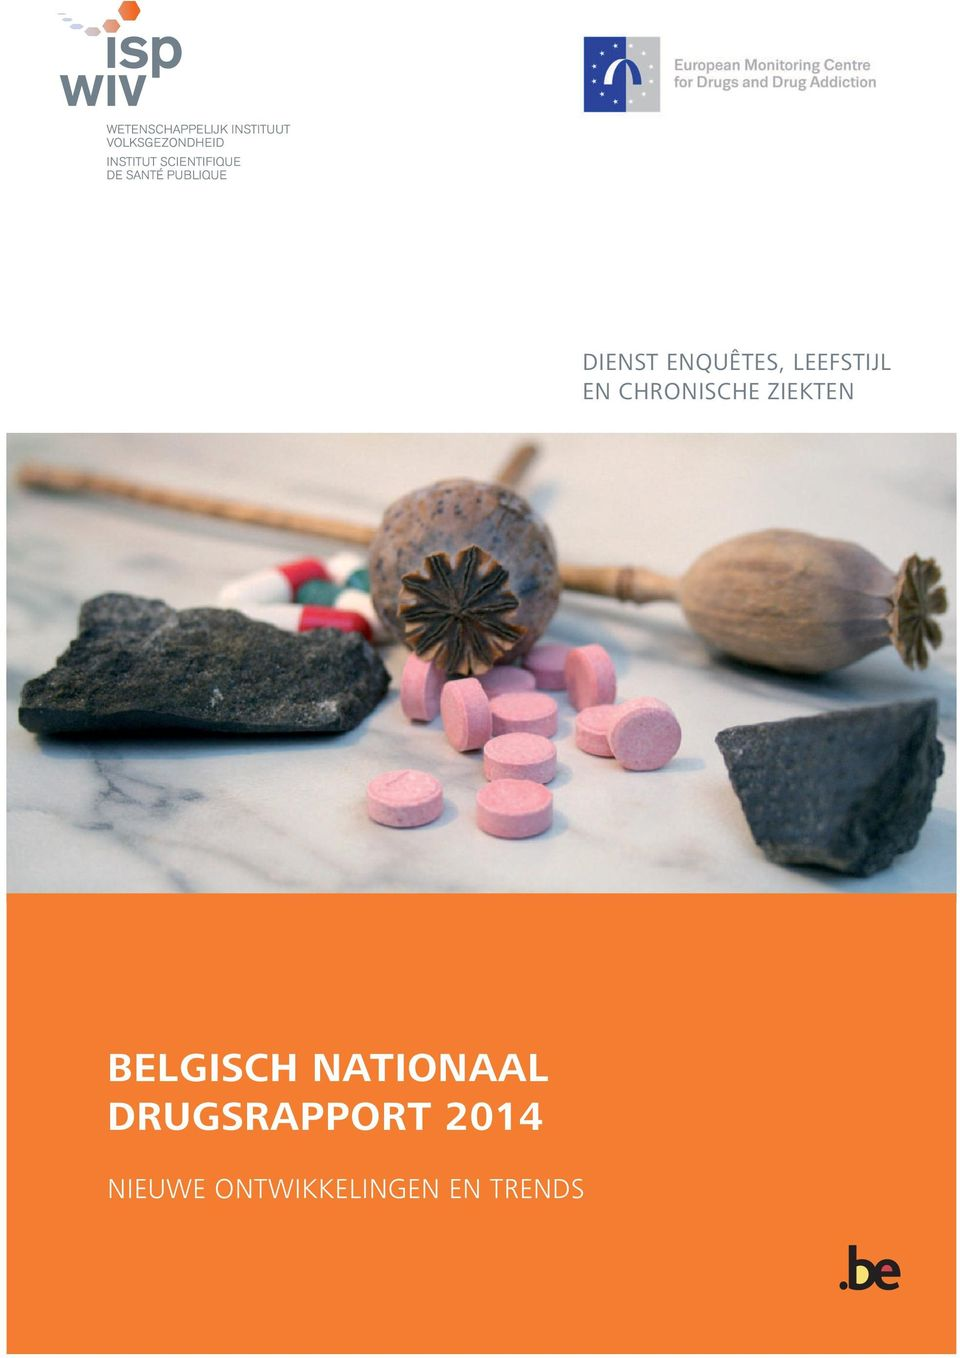 NATIONAAL DRUGSRAPPORT 2014